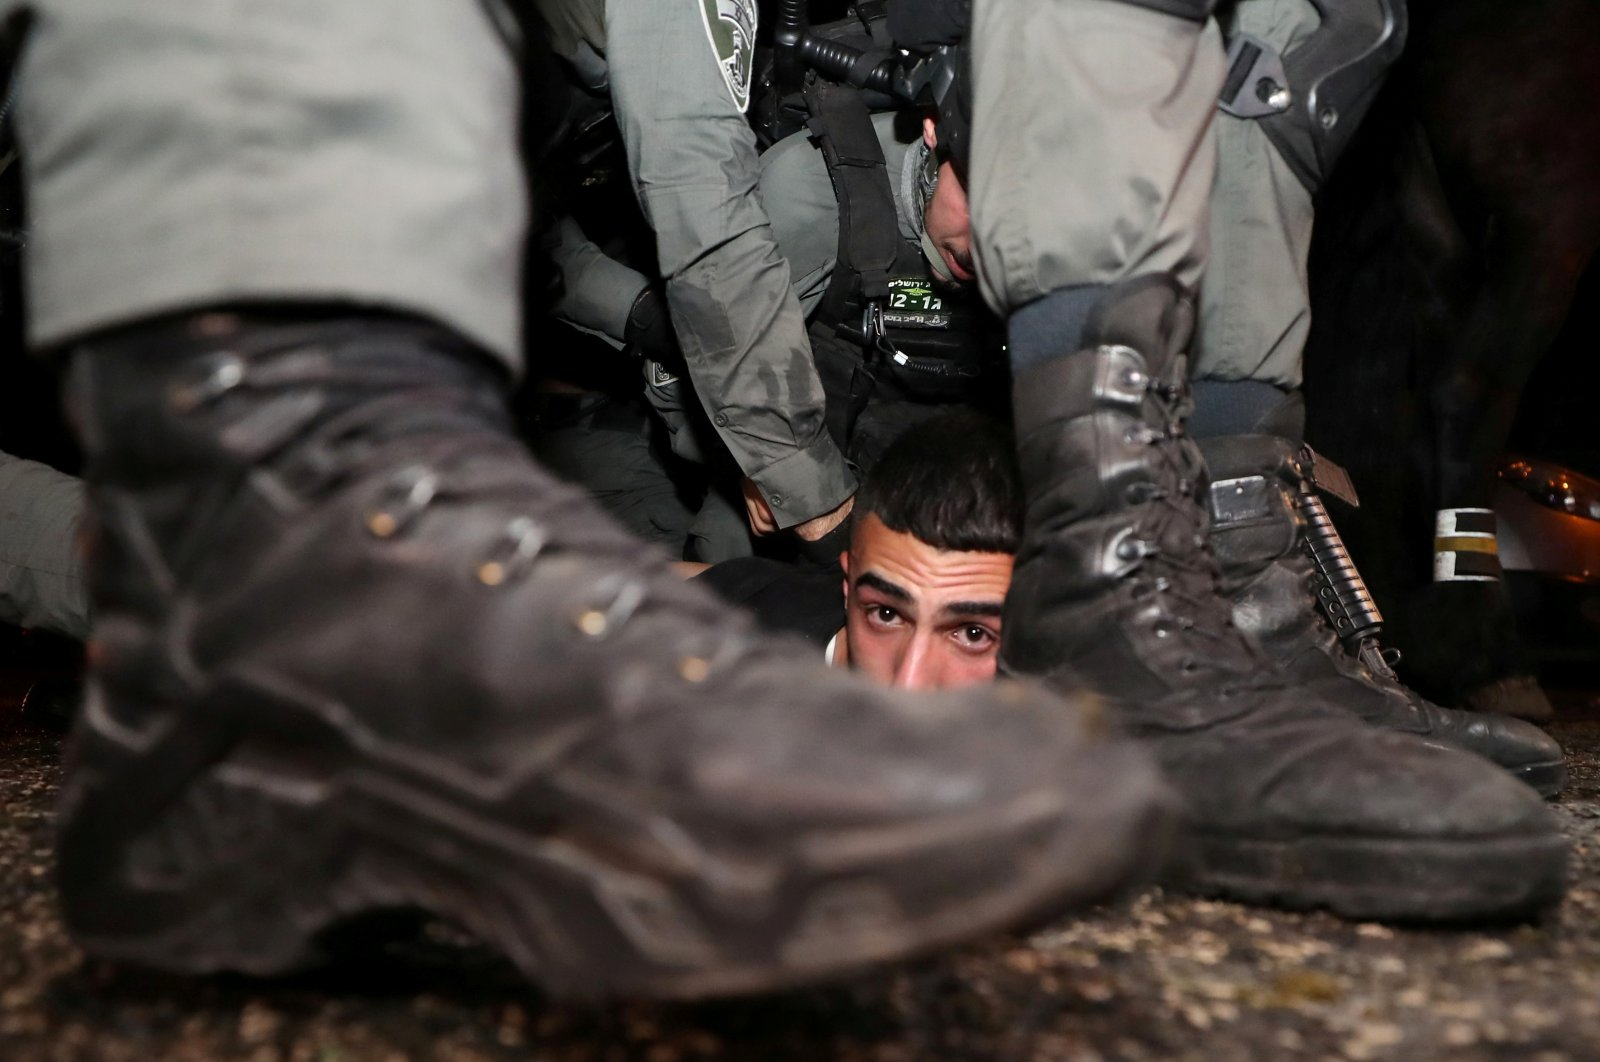 Israeli police detain a Palestinian protester amid ongoing tension ahead of an upcoming court hearing in an Israel-Palestinian land-ownership dispute in the Sheikh Jarrah neighborhood of occupied East Jerusalem, May 5, 2021. (Reuters Photo)